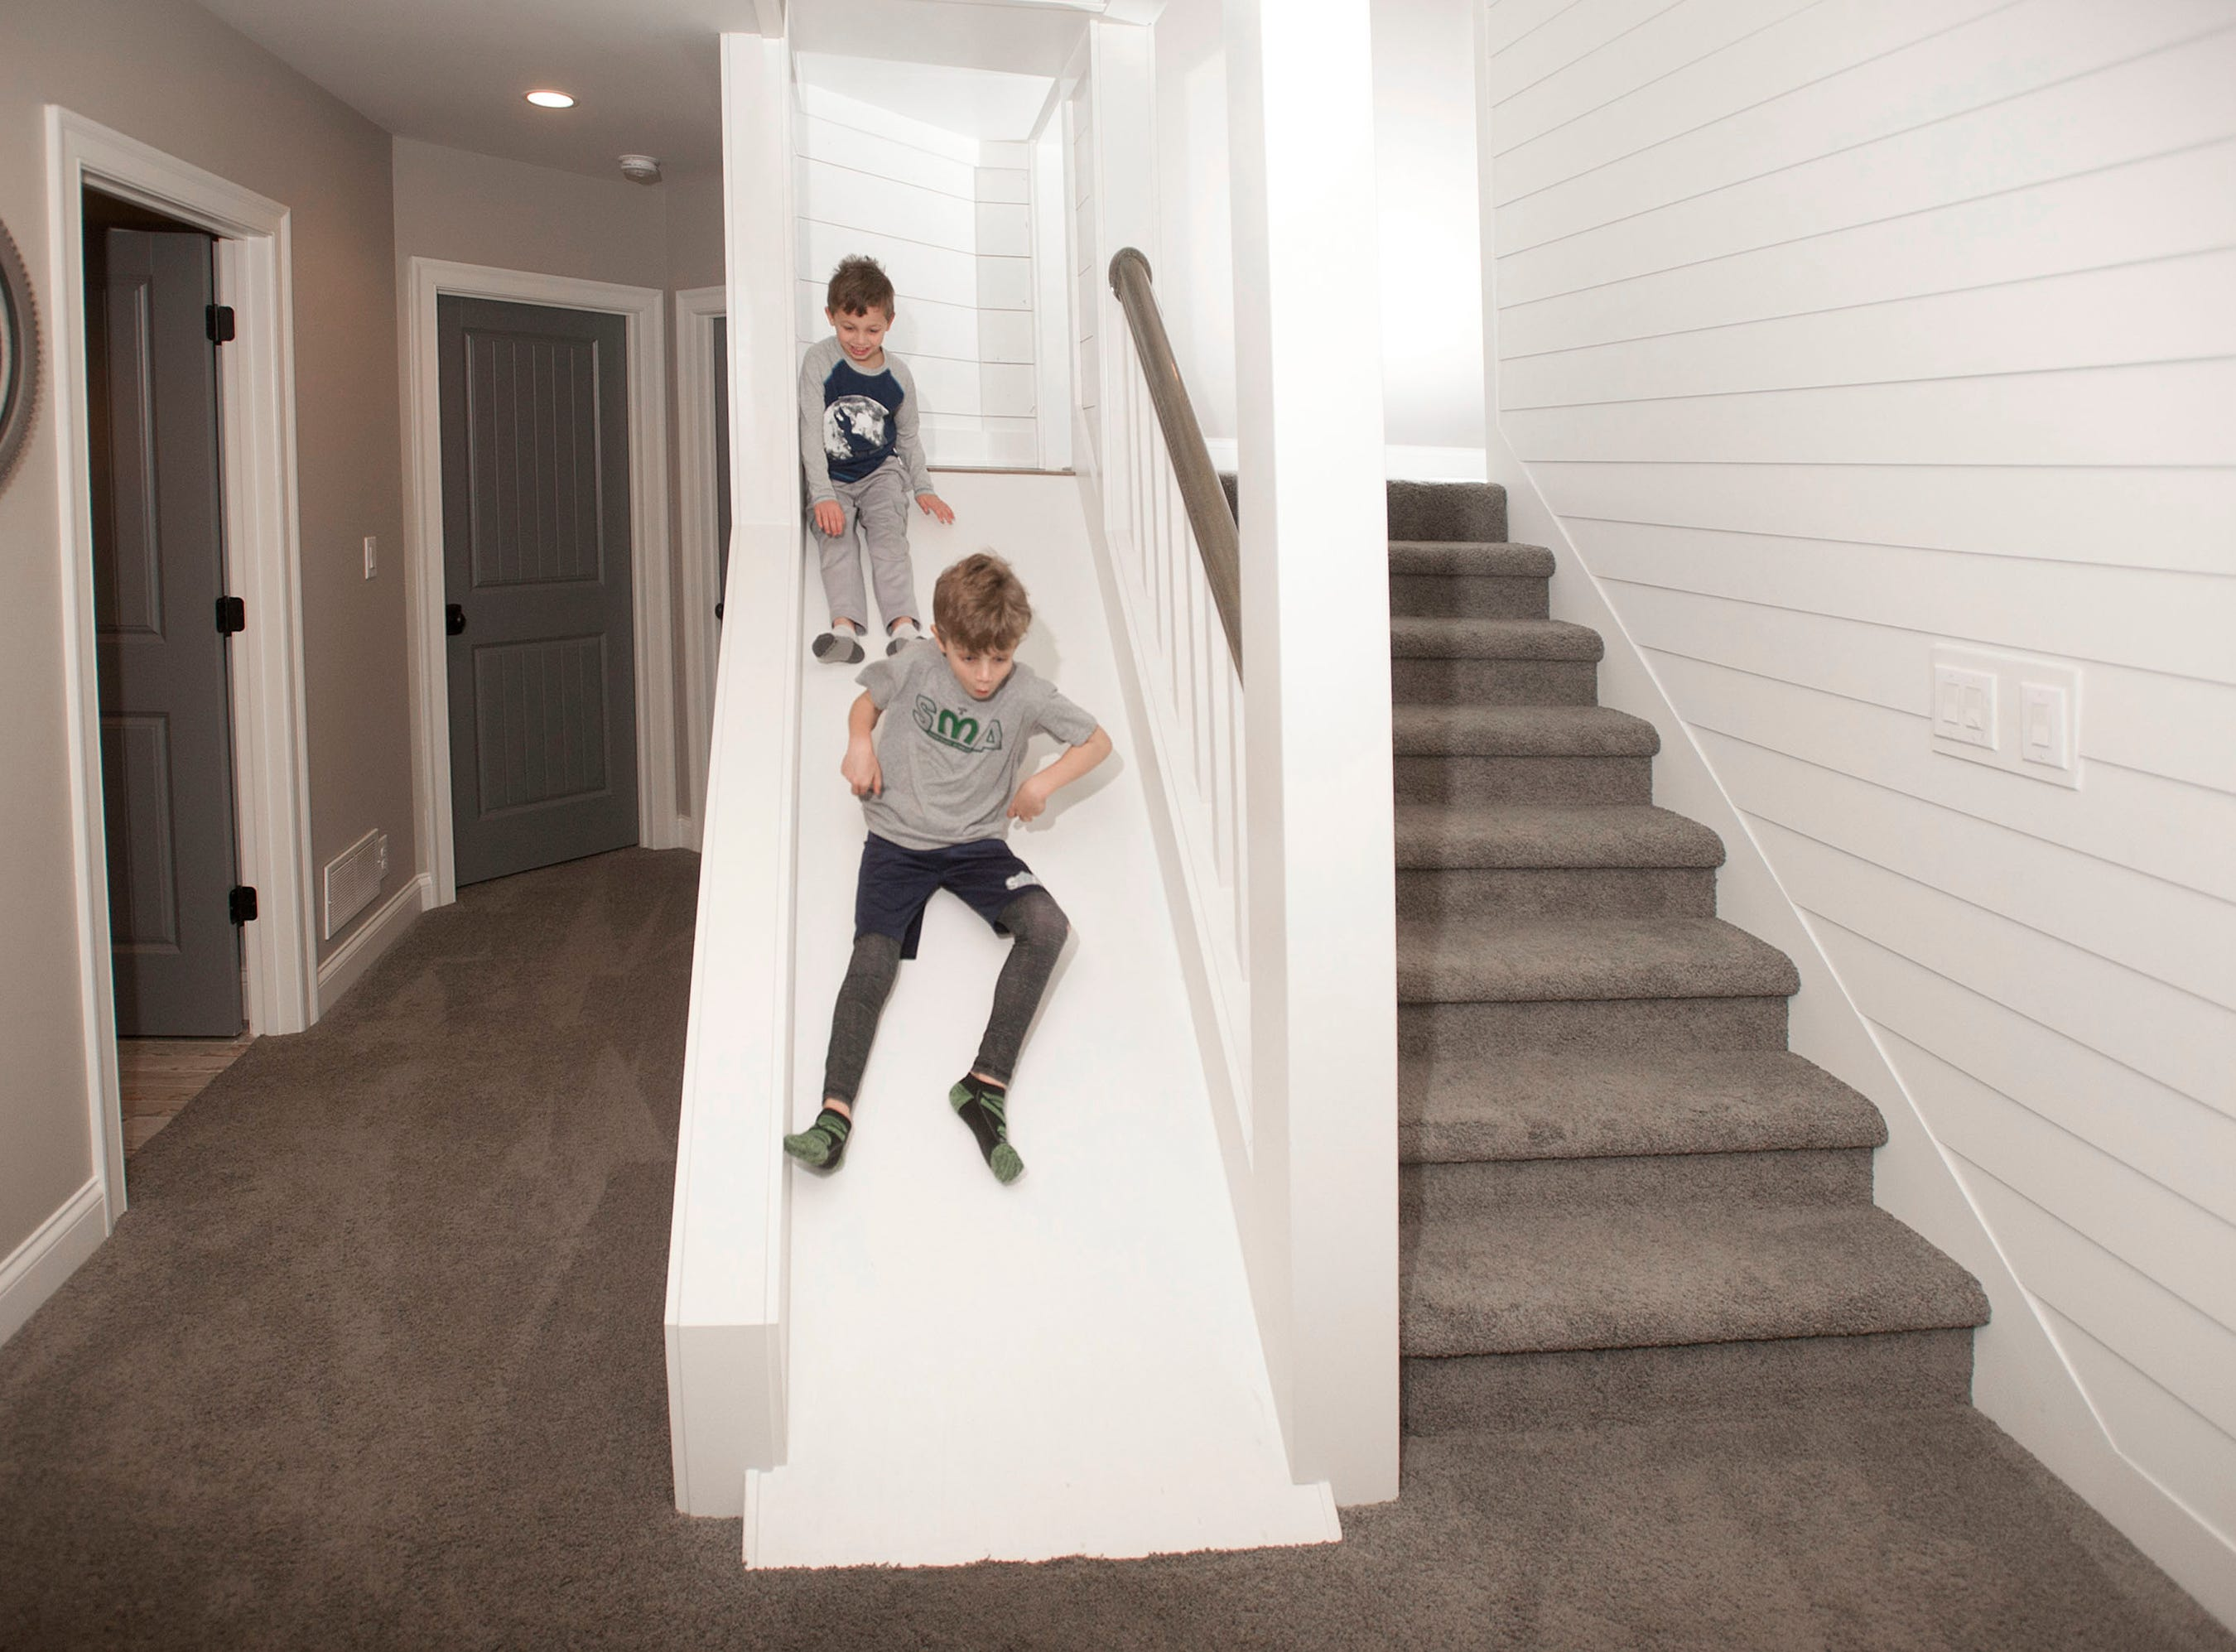 Ellis (top) and Ashur (bottom) Hannah head down a slide built alongside the stairwell to the basement family room.01 March 2019